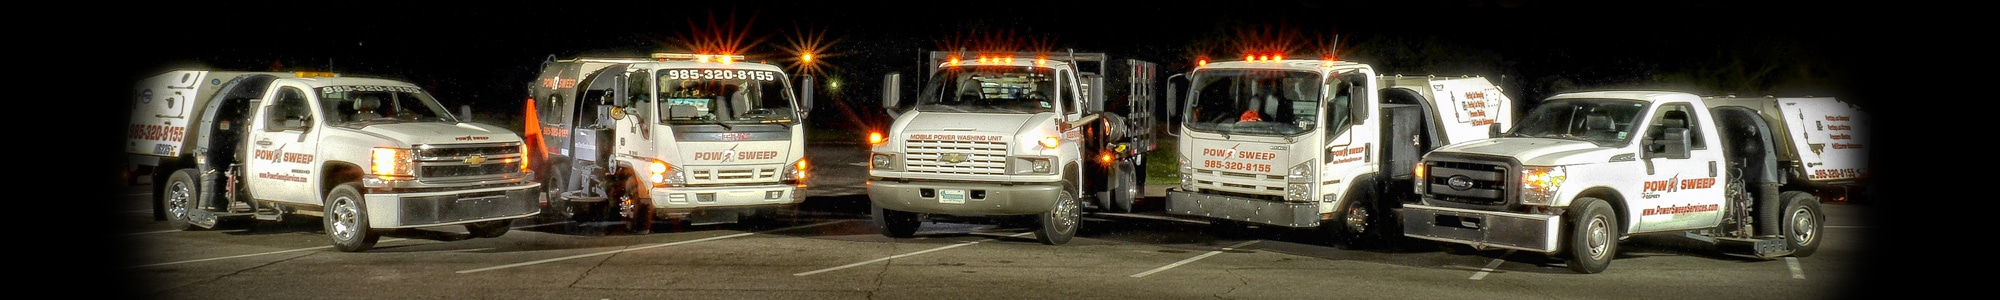 Power Sweeping Services Fleet